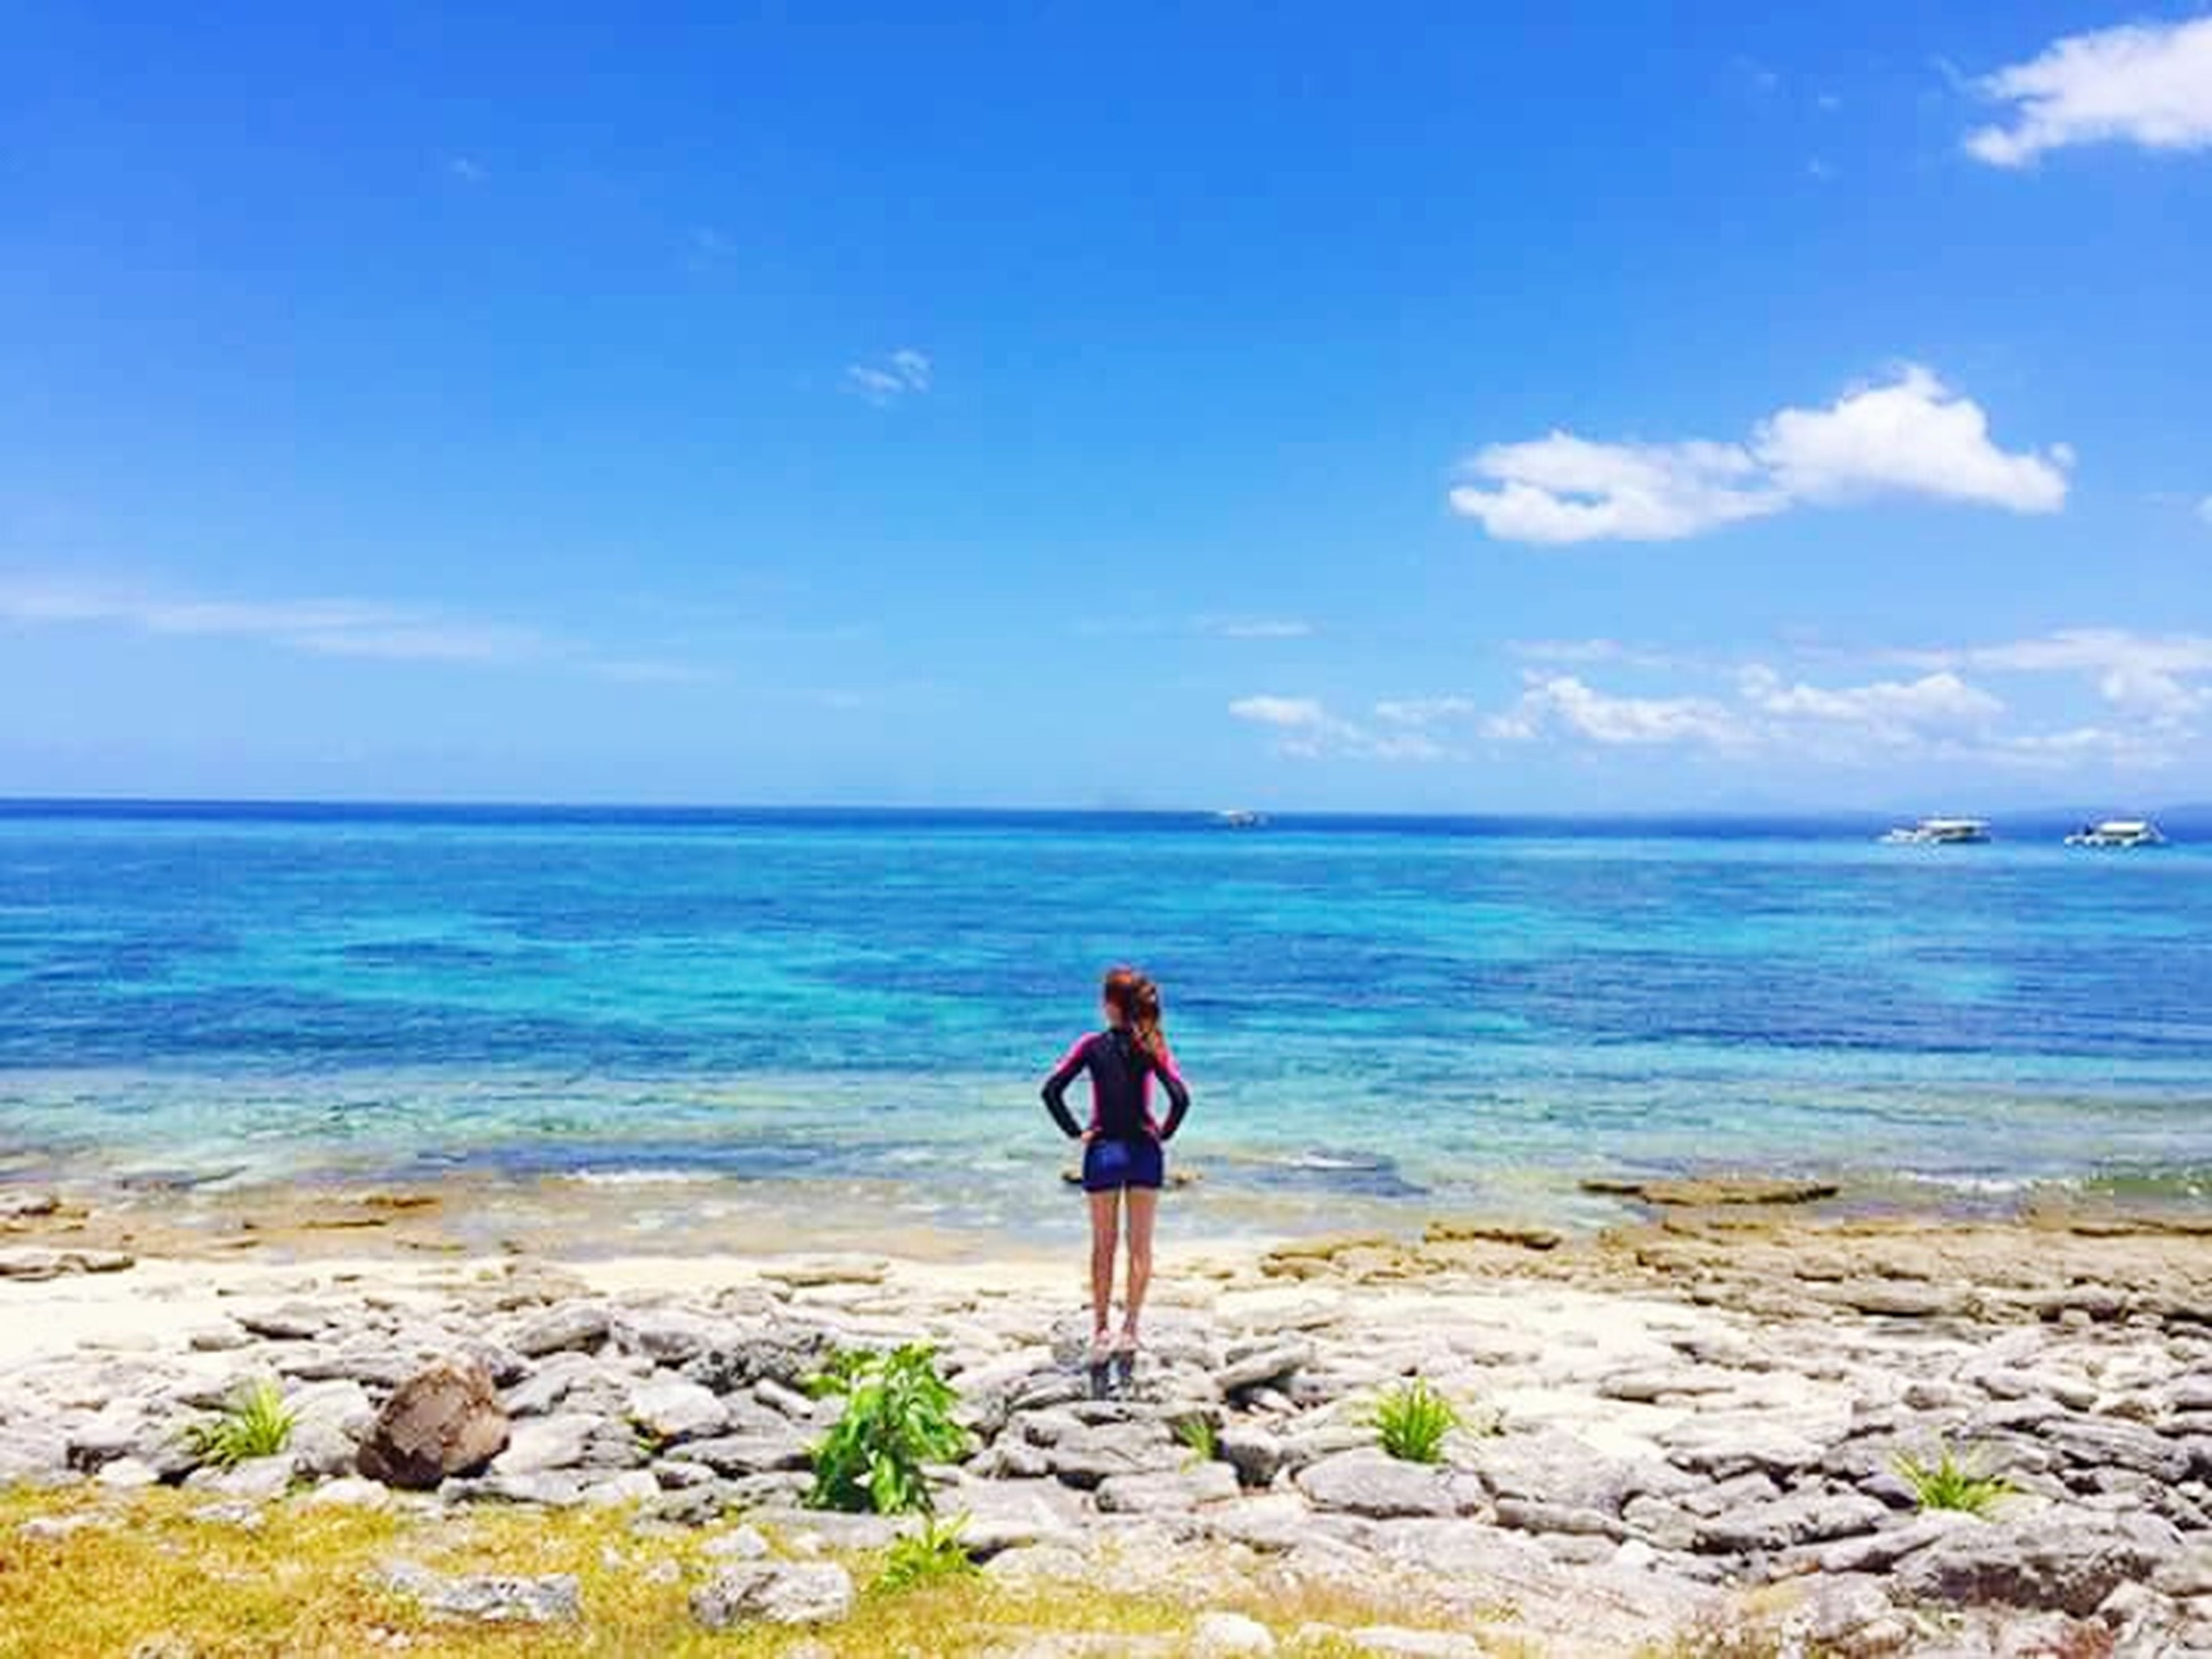 sea, water, full length, horizon over water, rear view, sky, standing, scenics, lifestyles, beauty in nature, leisure activity, tranquil scene, tranquility, shore, beach, nature, blue, casual clothing